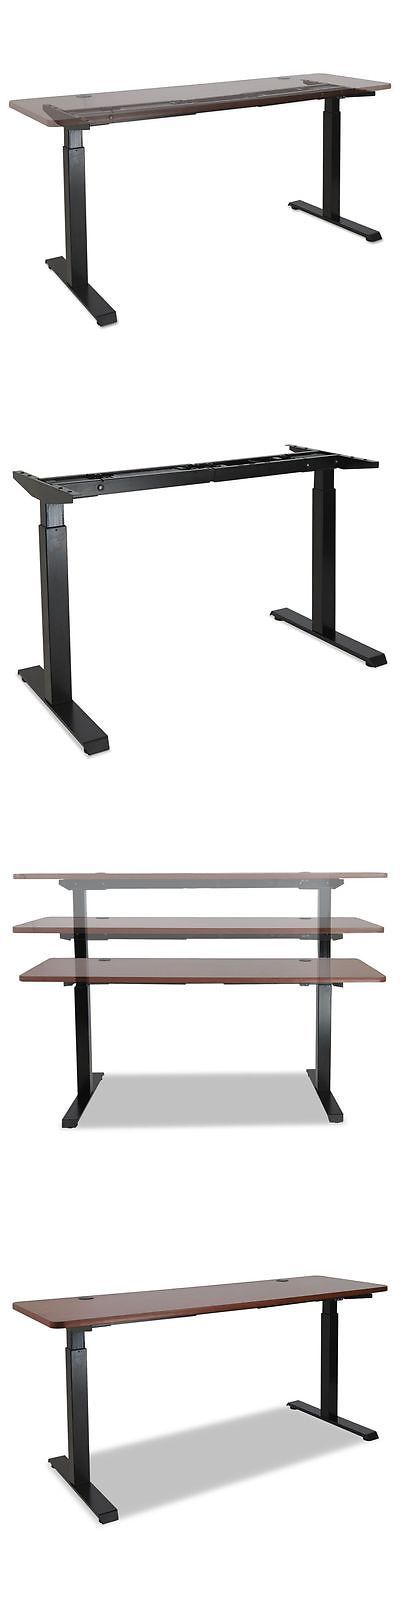 Other Cardio Equipment 28063: Alera 2-Stage Electric Adjustable Table Base, 27 1 4 To 47 1 4 - Aleht2ssb -> BUY IT NOW ONLY: $520 on eBay!